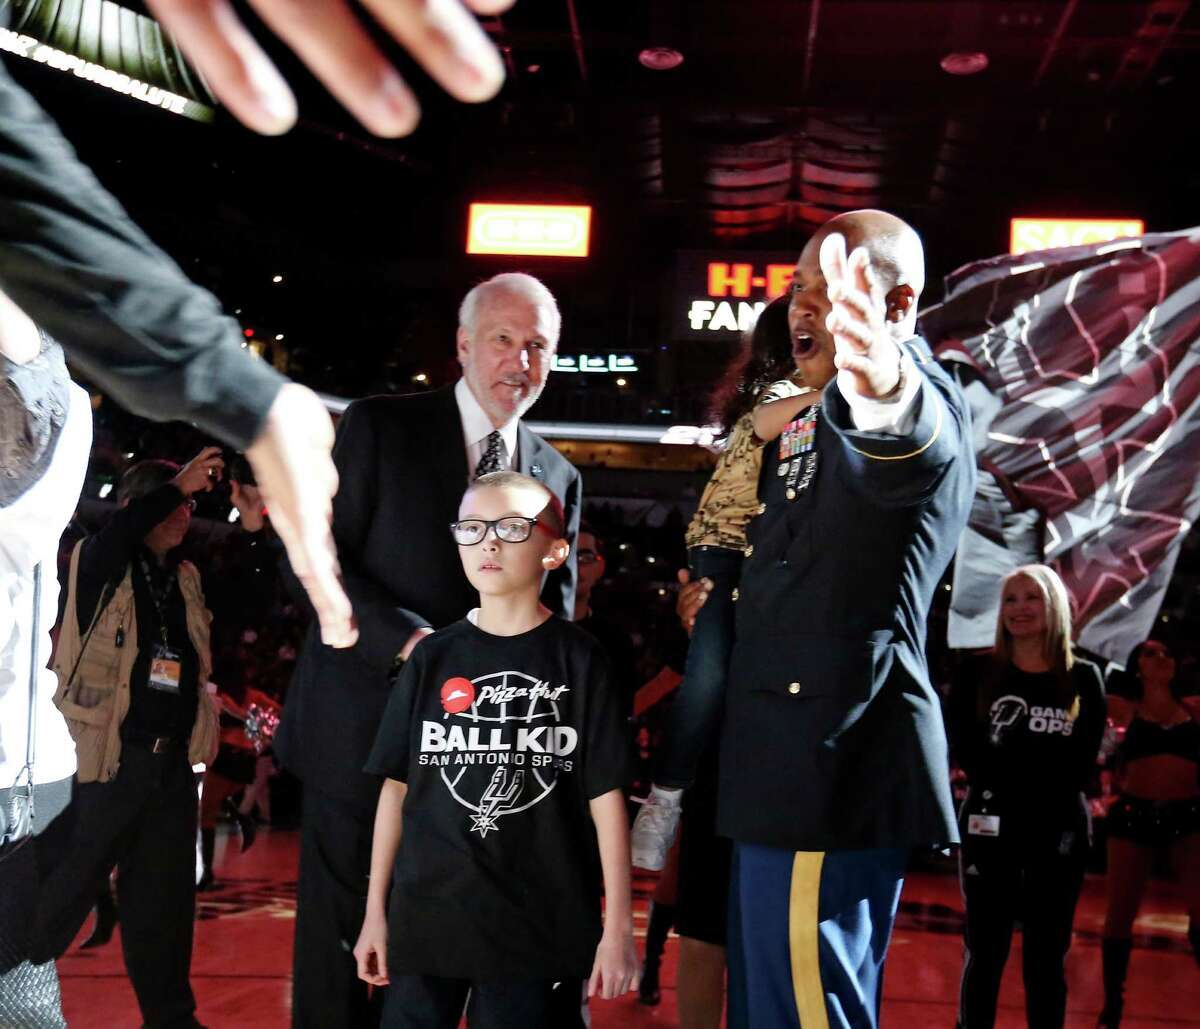 Ginobili San Miguel-Ramirez, 10, (center) and others greet San Antonio Spurs players during introductions as head coach Gregg Popovich (center rear) looks on before the game with the Utah Jazz Monday Dec. 14, 2015 at the AT&T Center.